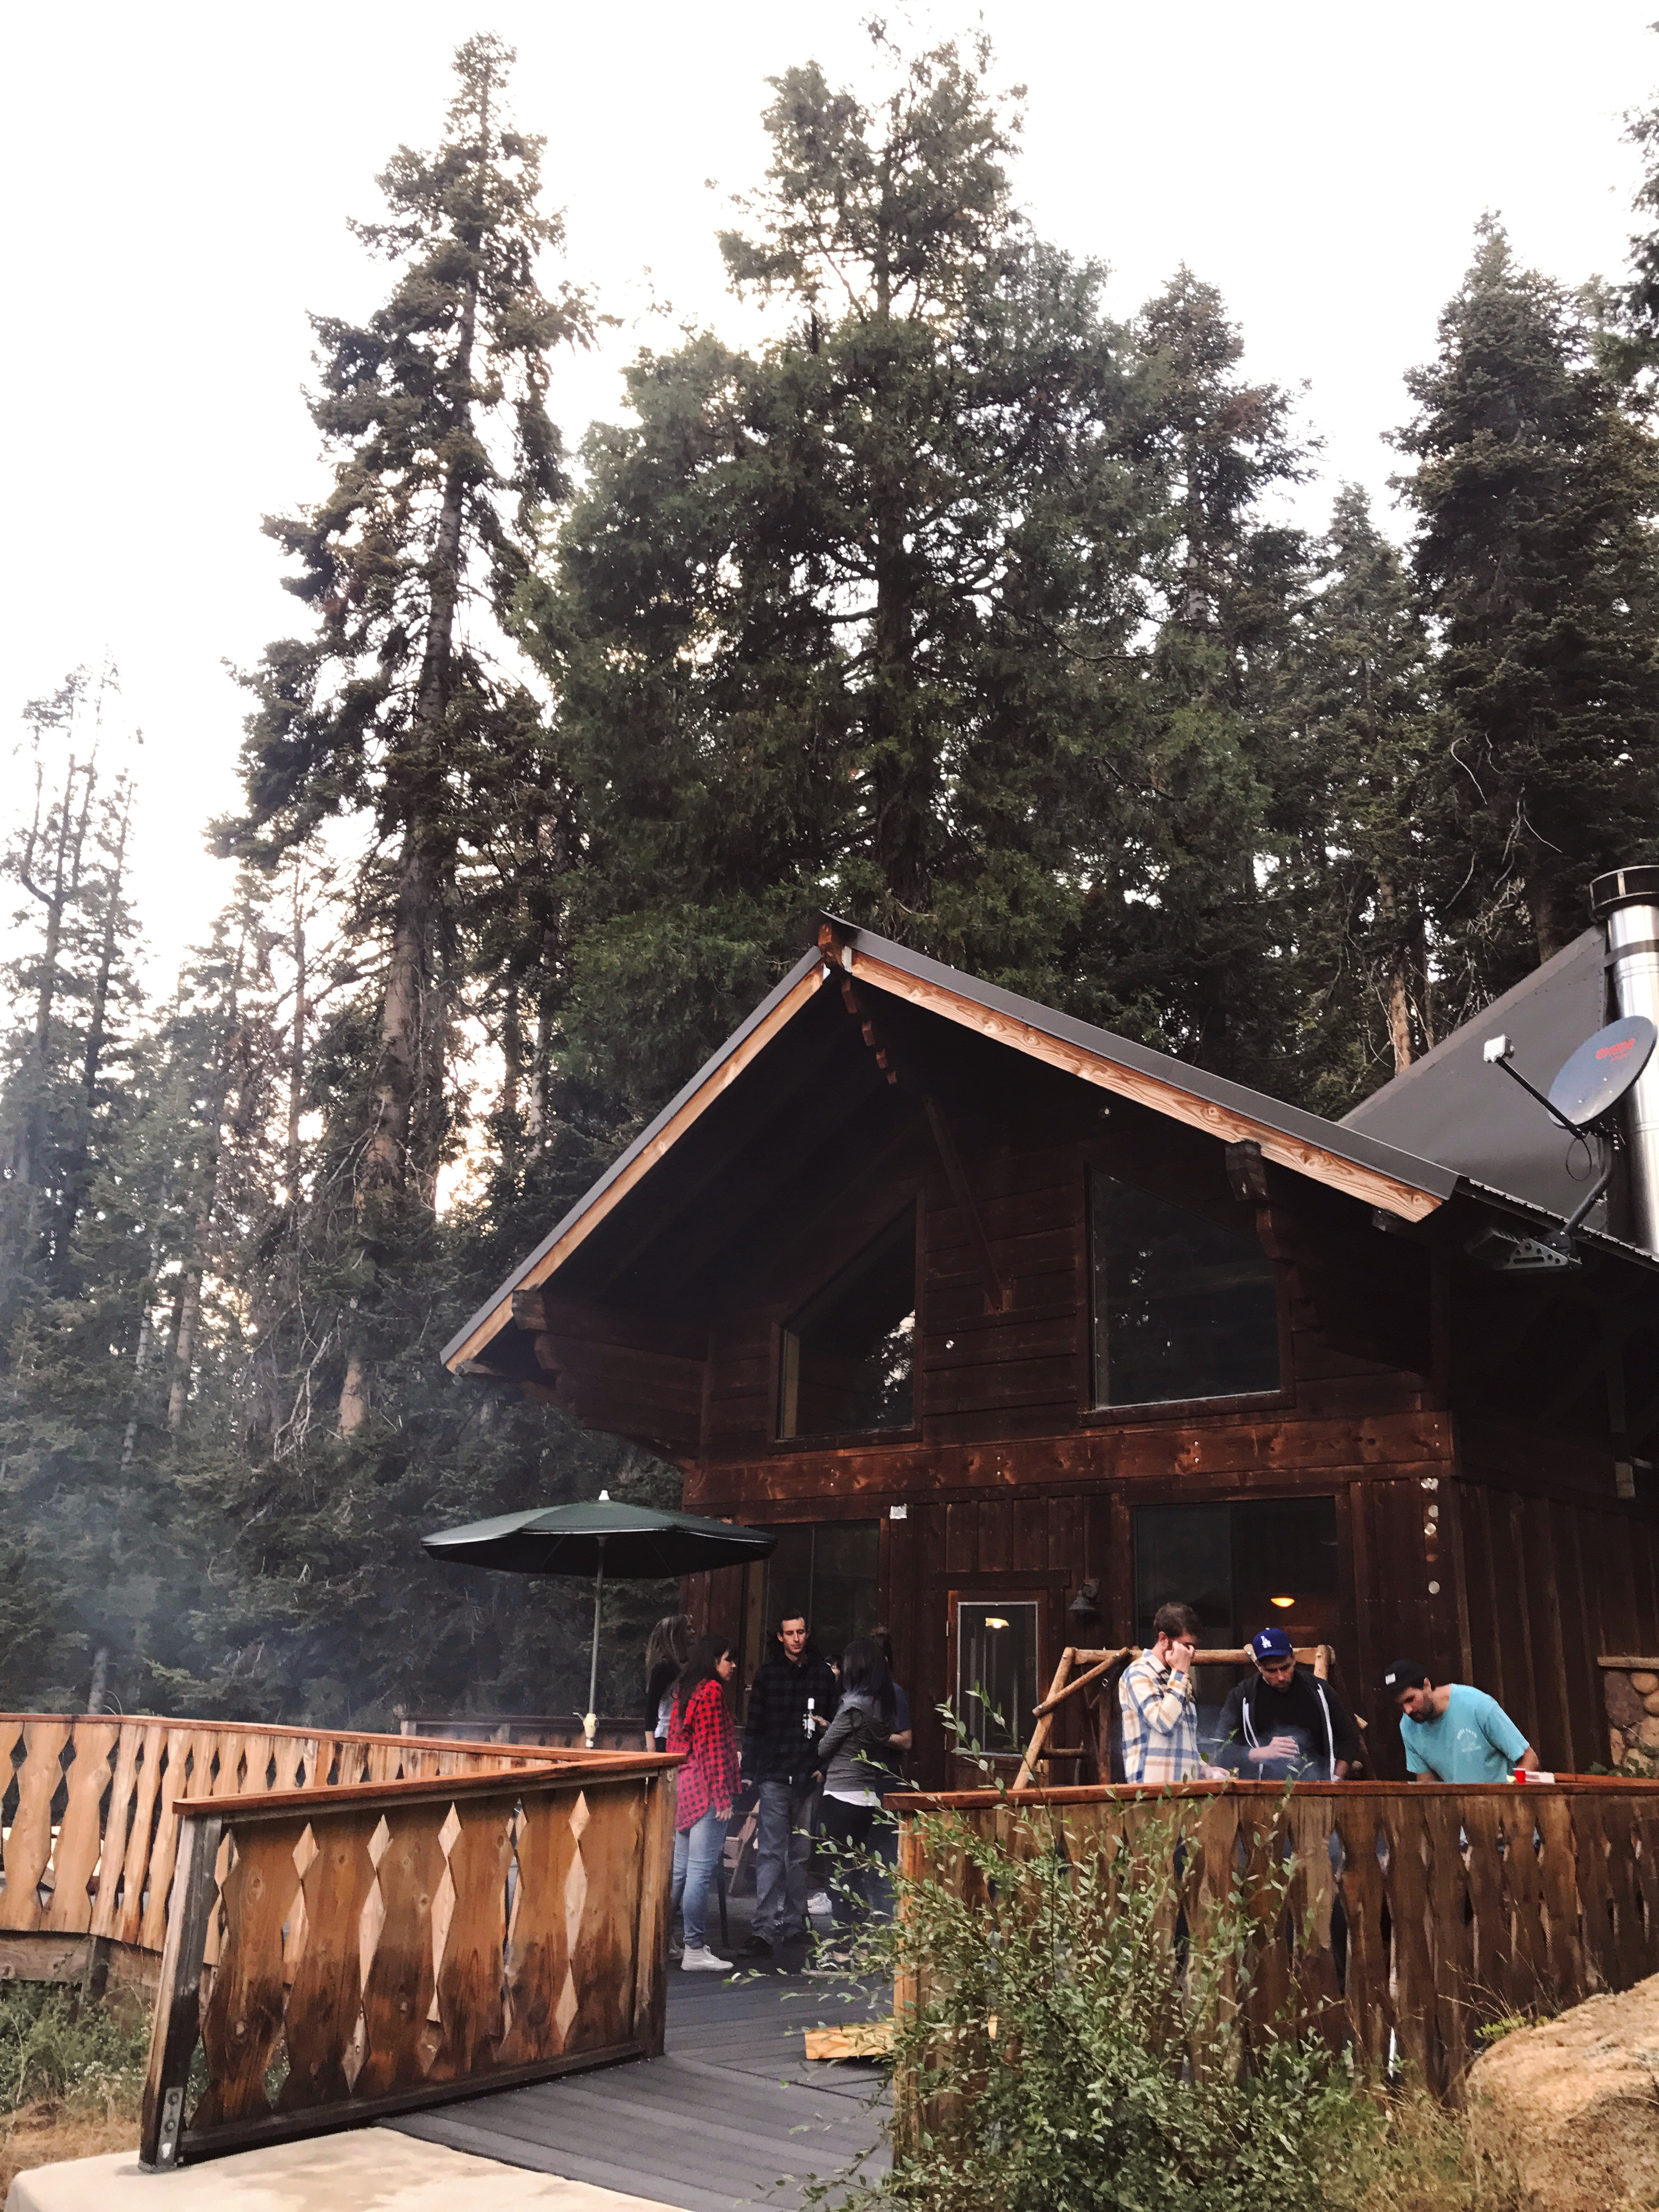 sequoia now lodge tent deluxe cabins and cabin rv campground book